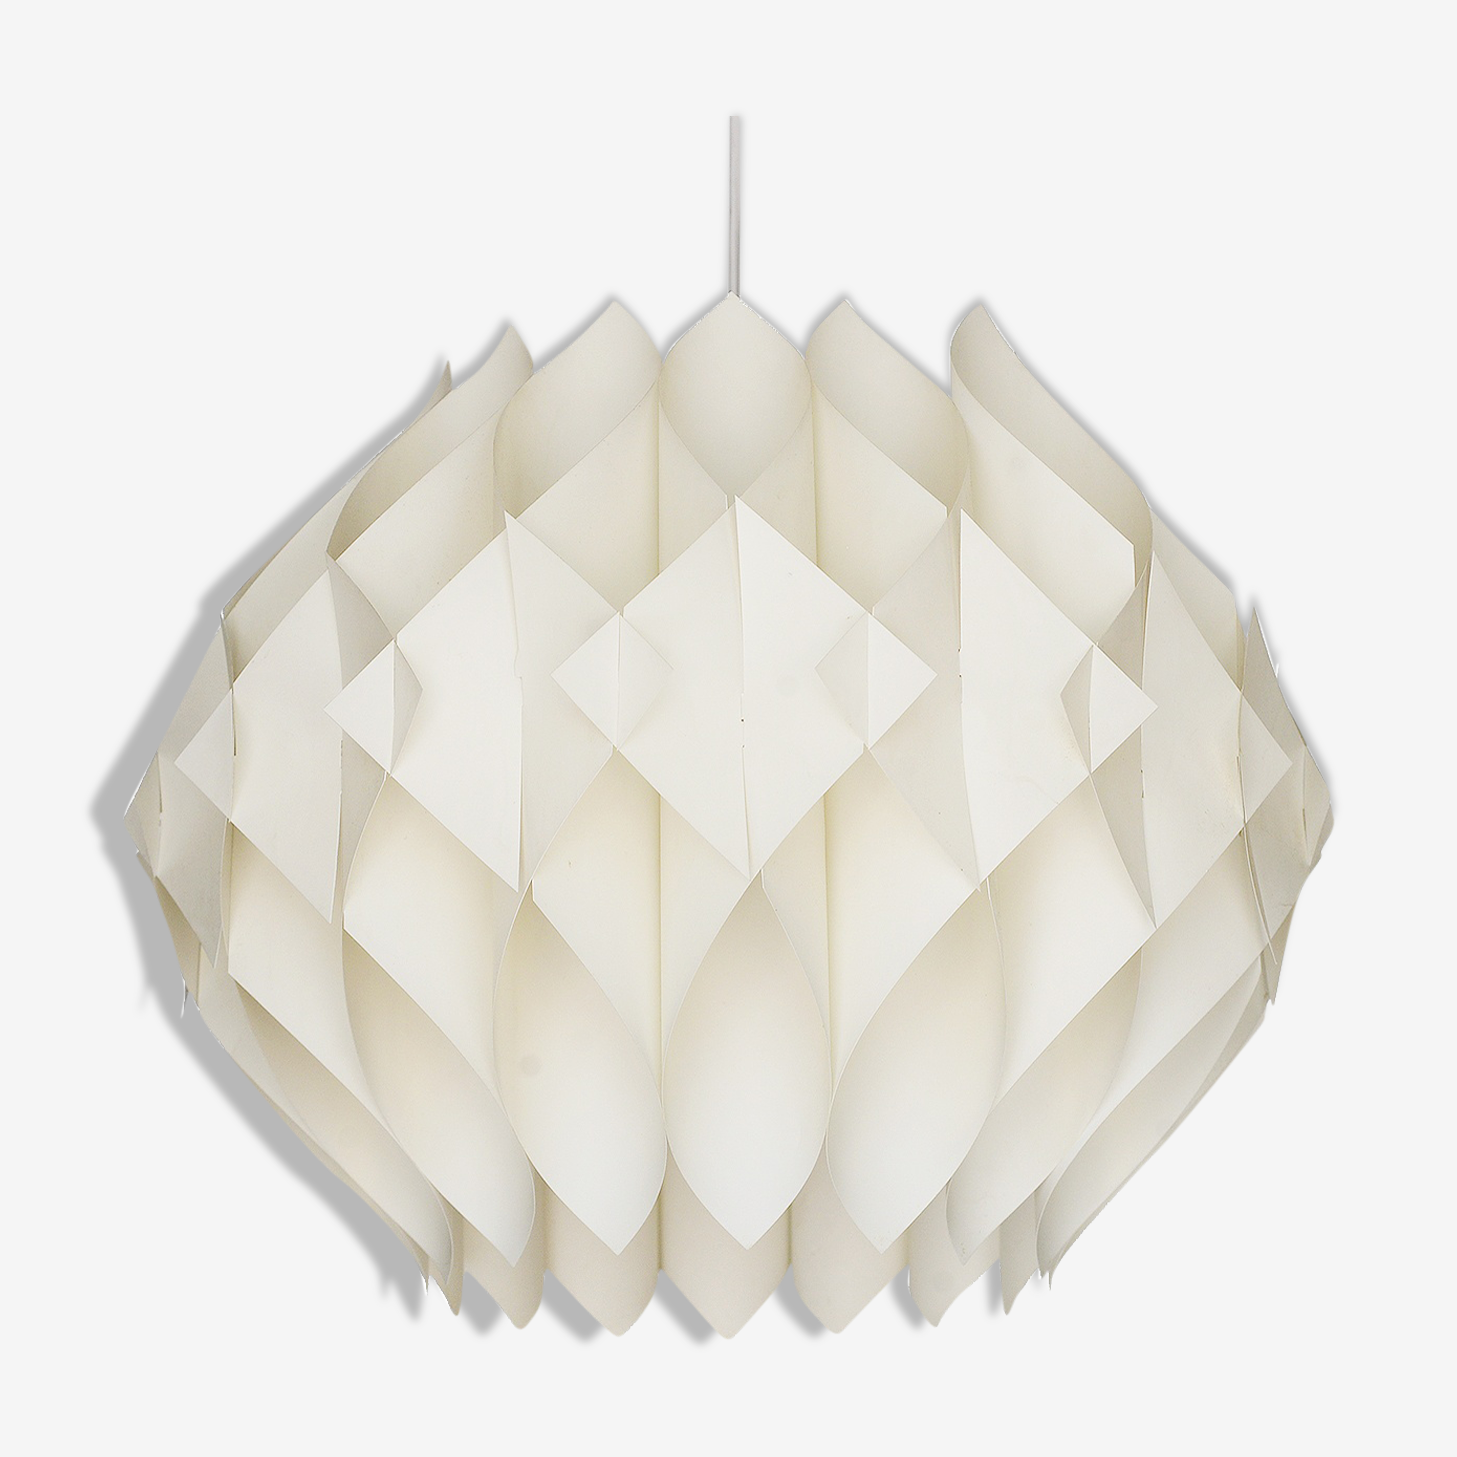 "Acrylic hanging light ""Butterfly"" by Lars Shiøler for Hoyrup lighting"